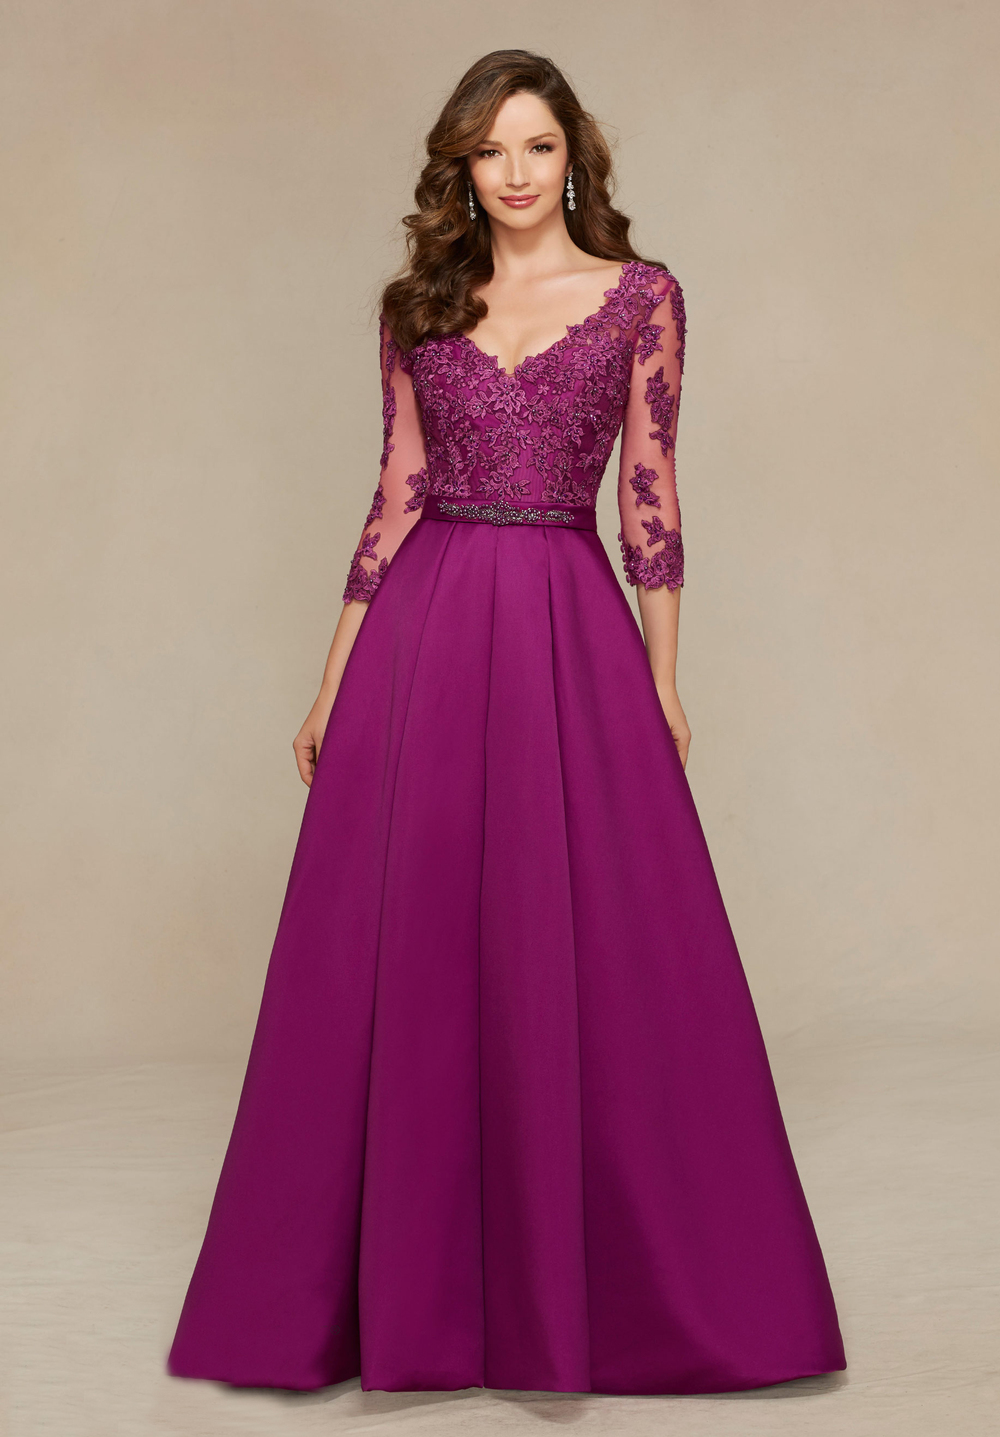 jcpenney girls plus size dresses jcpenney wedding dresses Jcpenney girls plus size dresses Jcpenney Plus Length Clothes Shopstyle Locate Jcpenney Plus Size Dresses